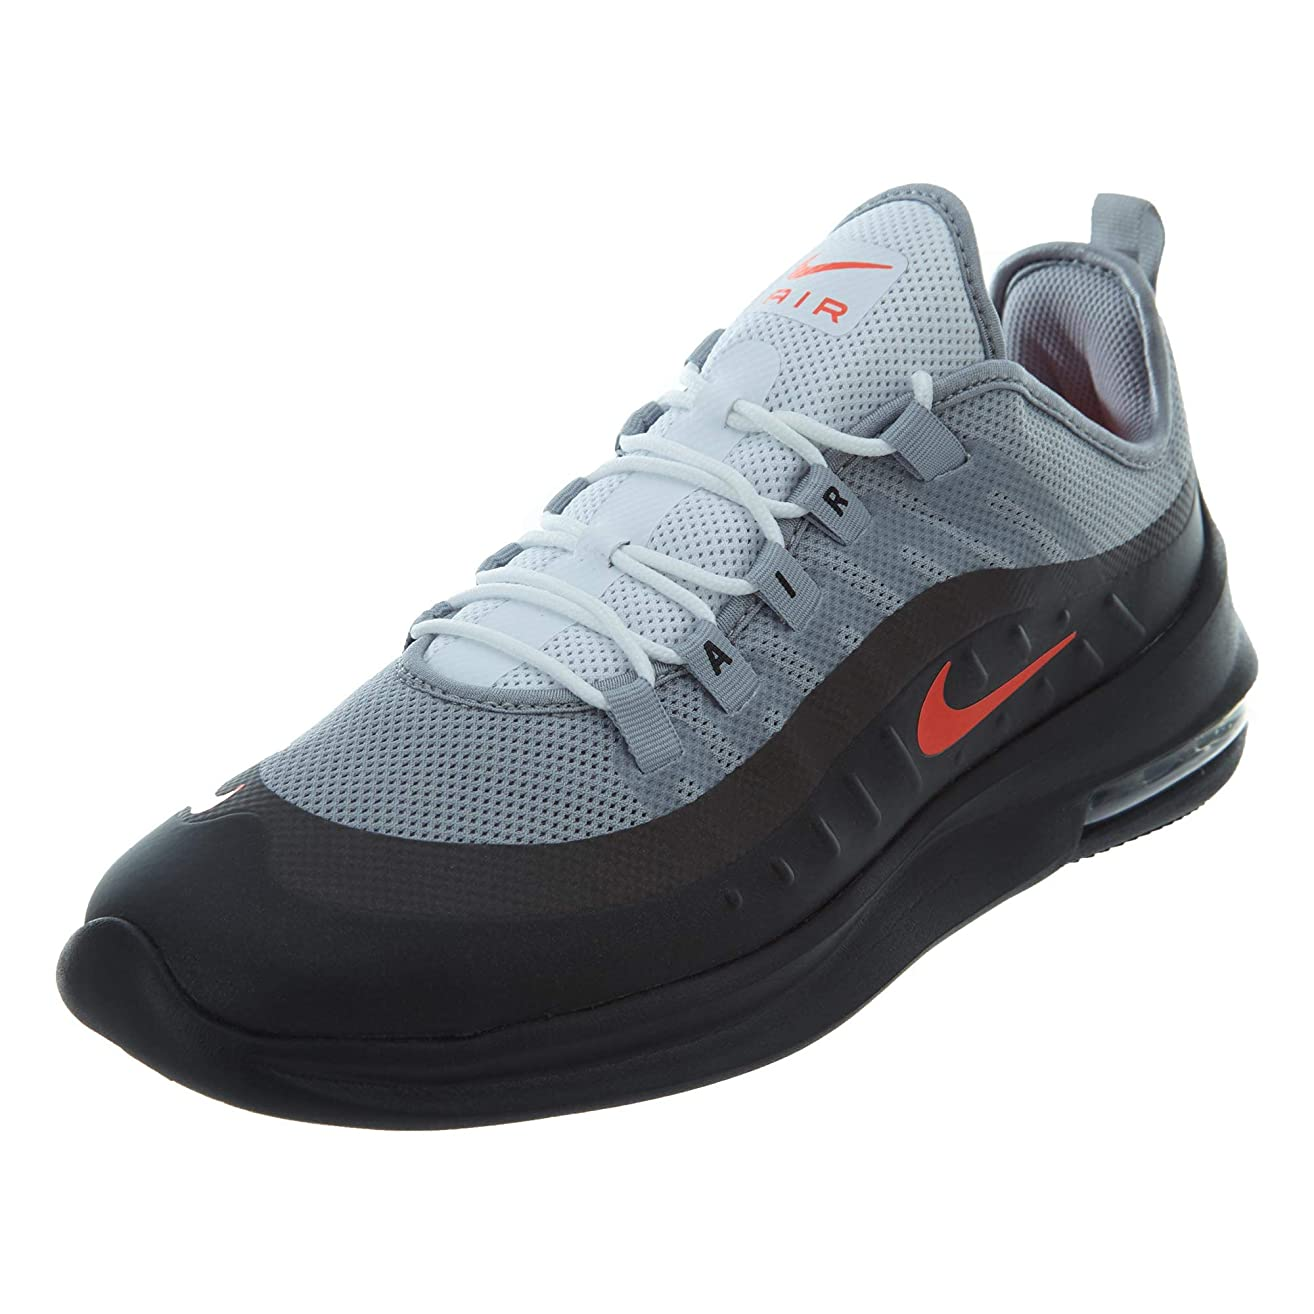 Nike Men's Air Max Axis Running Shoe, Wolf Grey/Total Crimson/Black/Anthracite, Size 10